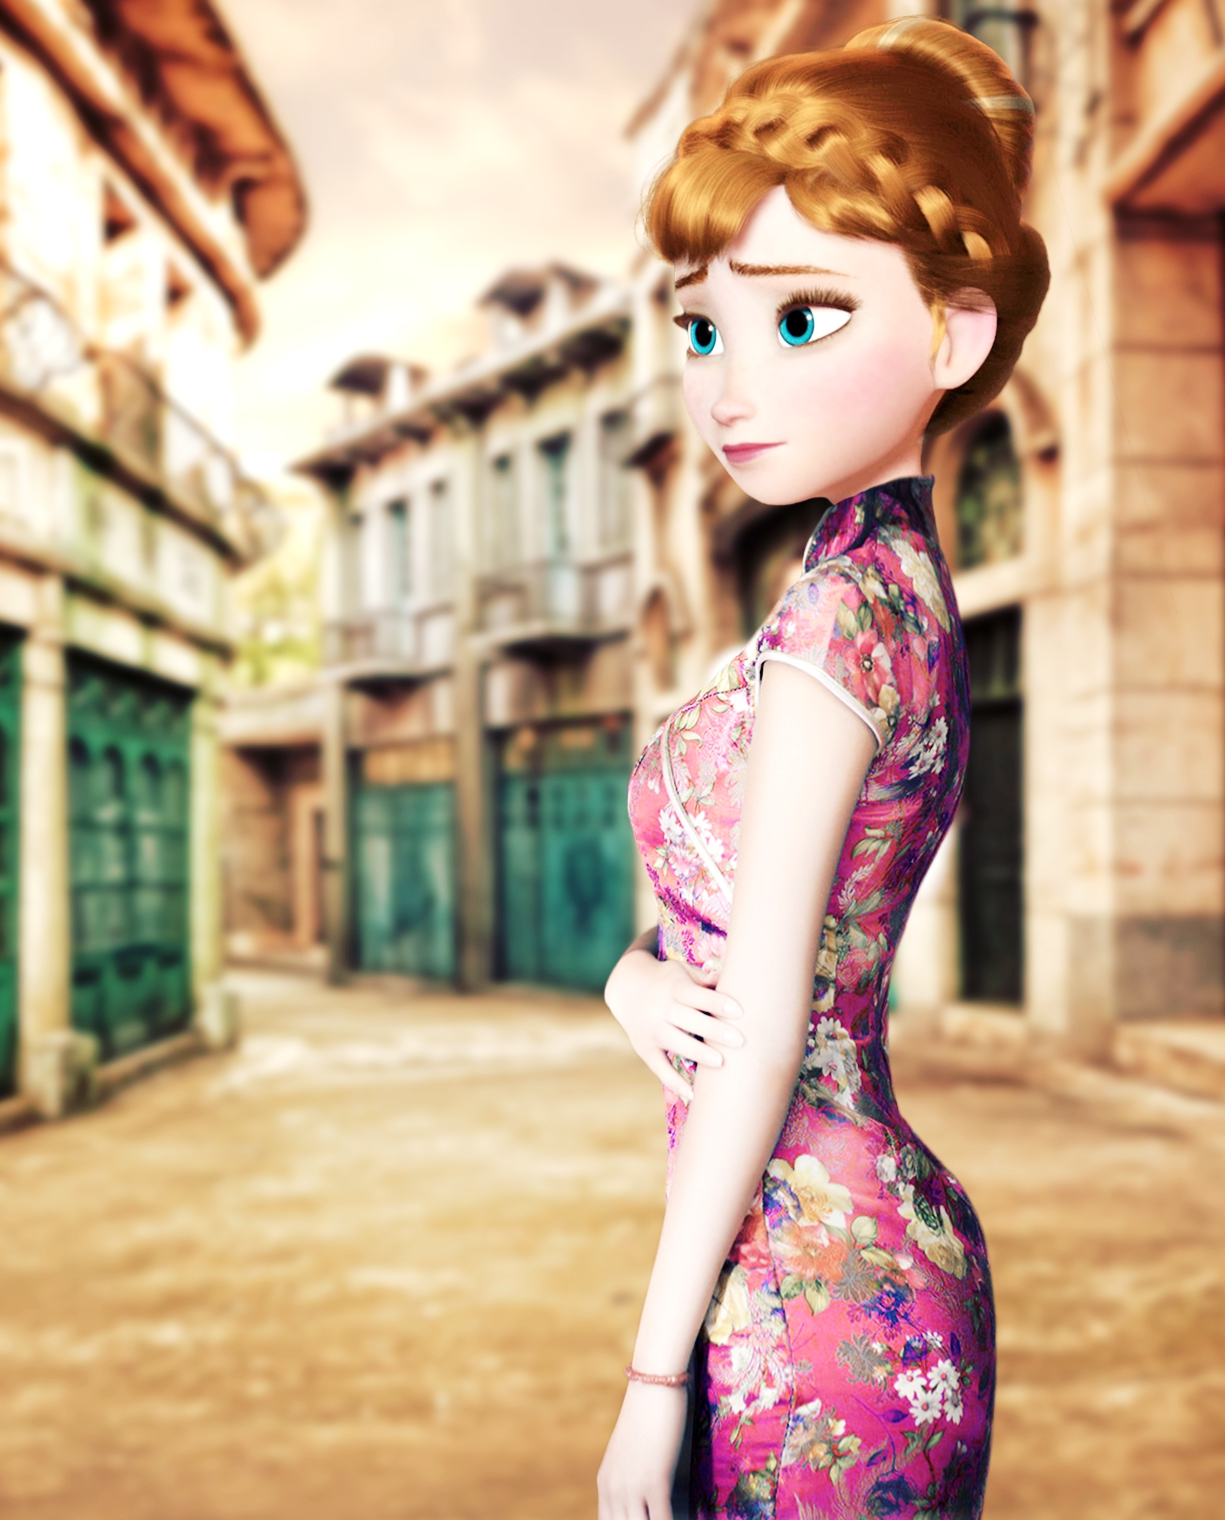 Heres What Its Like If Frozen Had Been Set In China